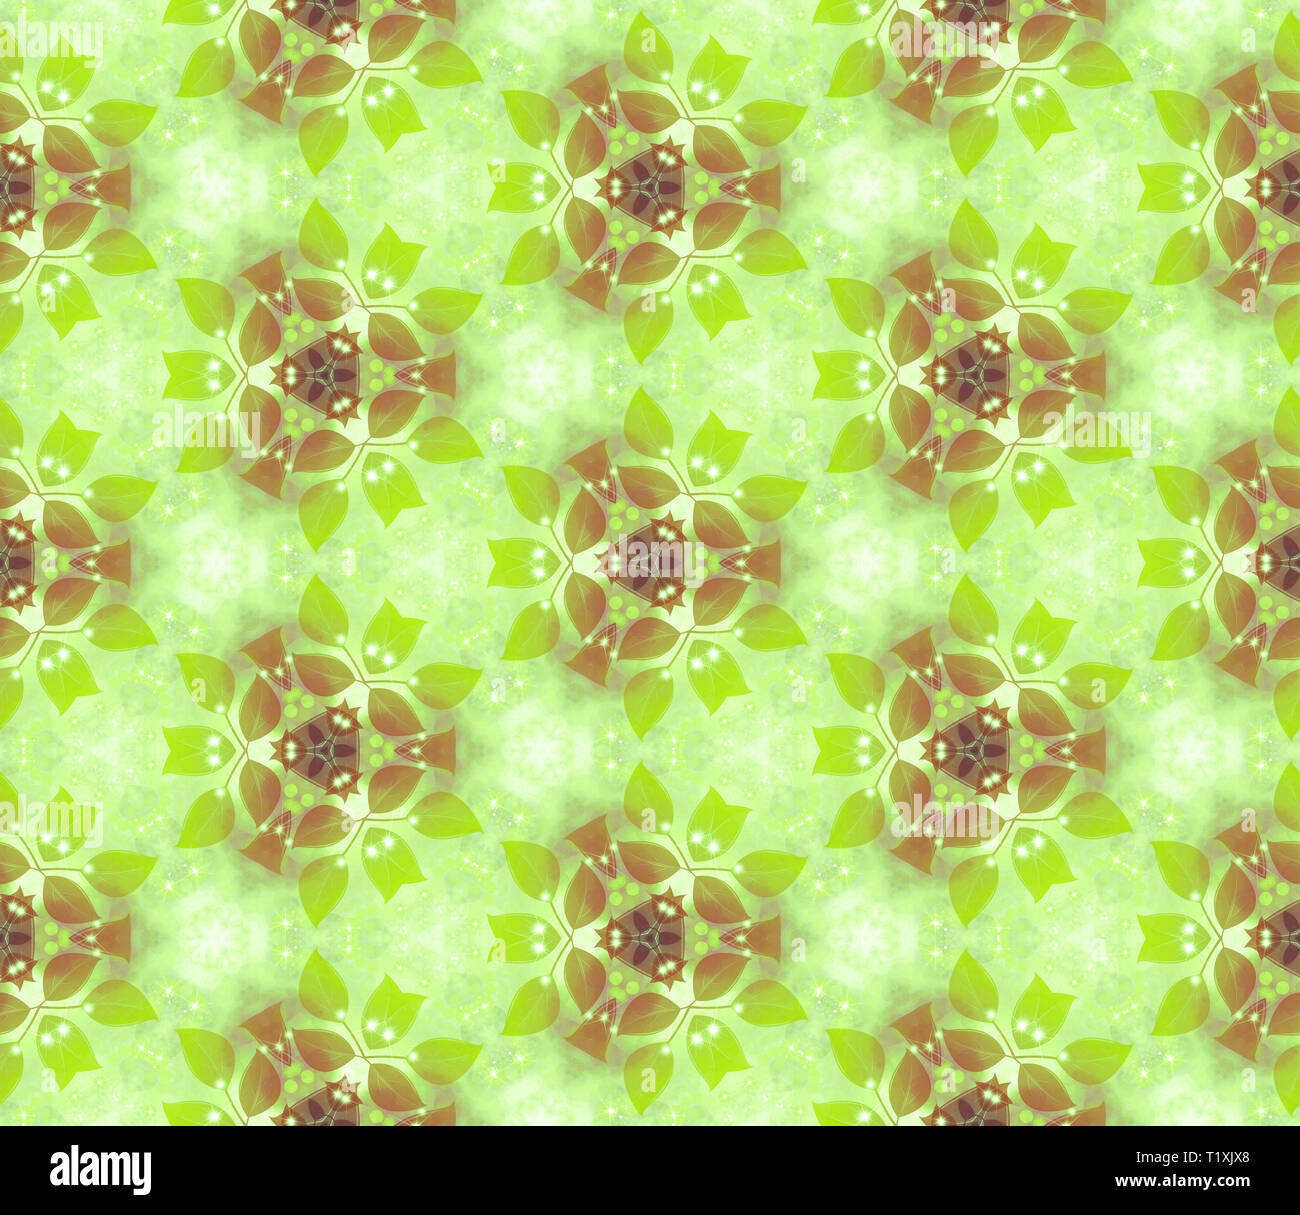 Seamless air pattern, gentle leaves, green. Vegetable wall-paper in style of a fantasy. A romantic background for design, packing paper, greeting card - Stock Image